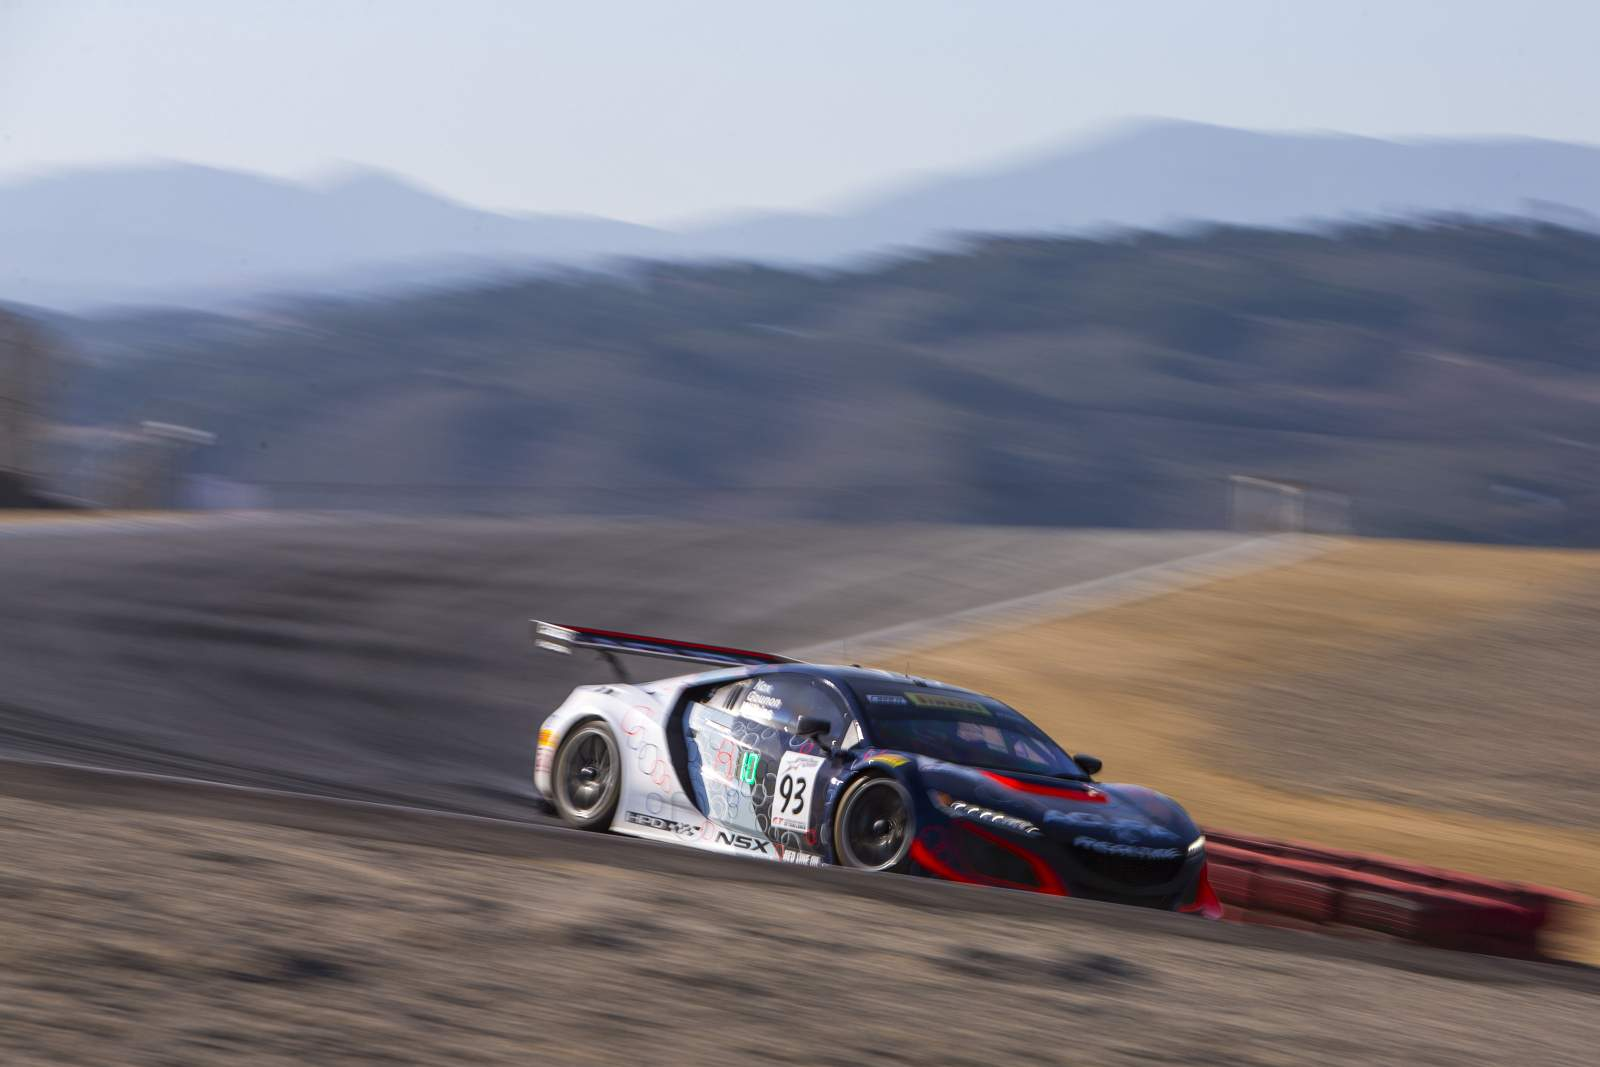 peter-kox-realtime-racing-pirelli-world-challenge-california-055